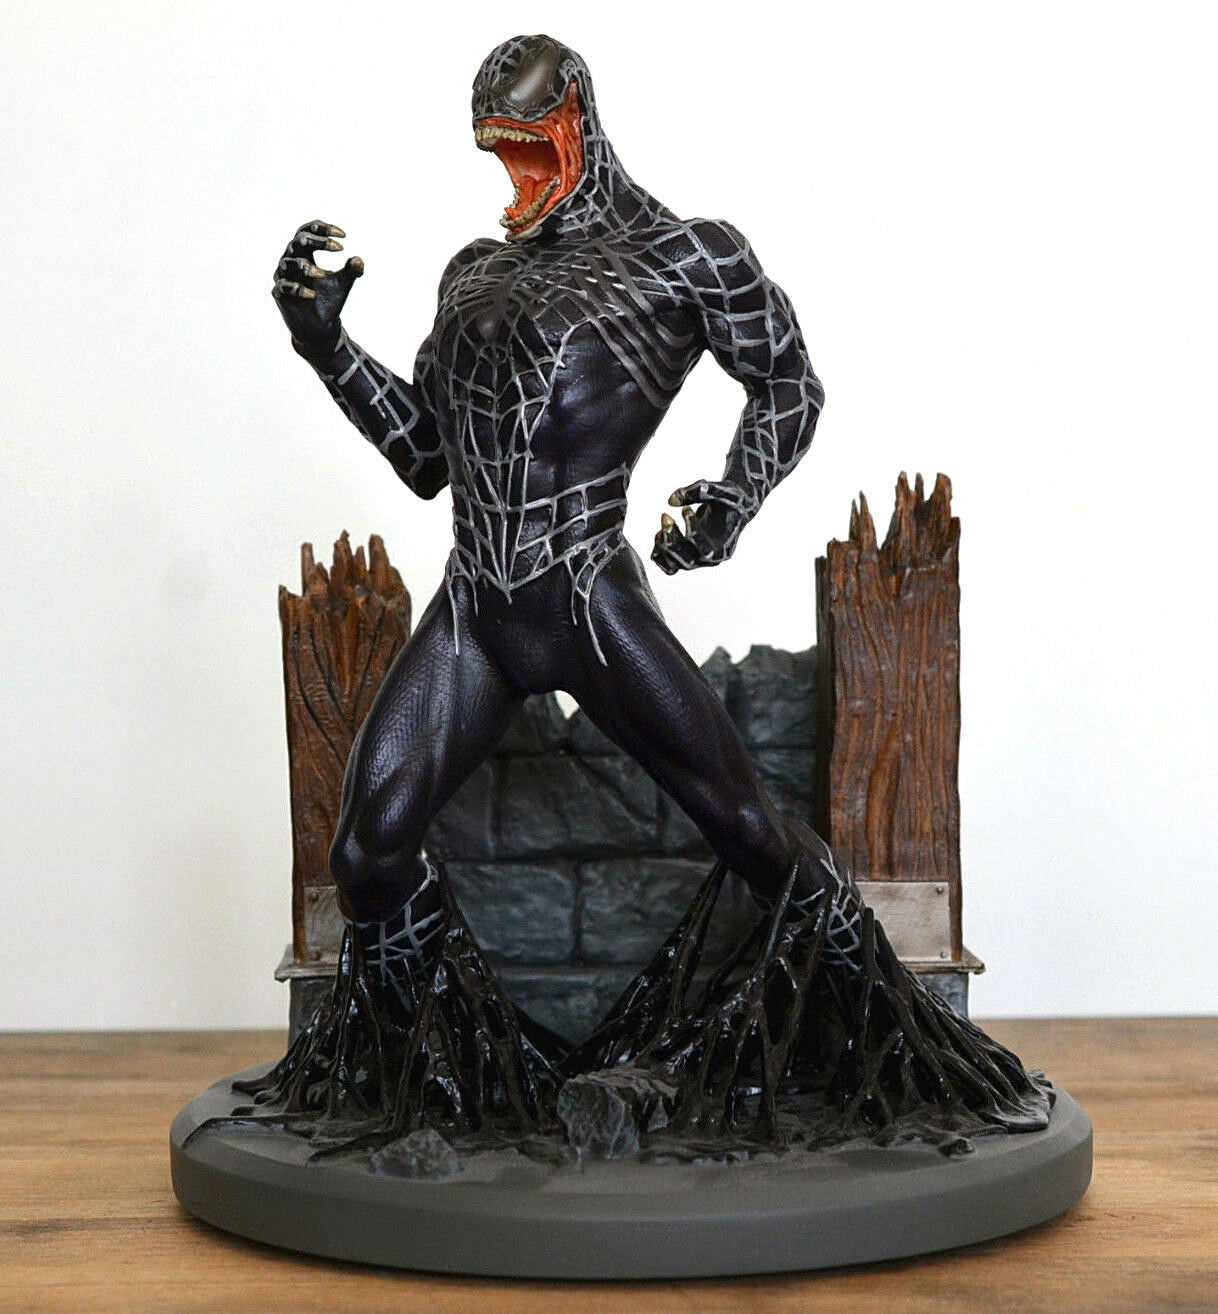 Hot  Spiderman 3 Venom Statue Diamond Select 9  Figure numérougeé édition limitée